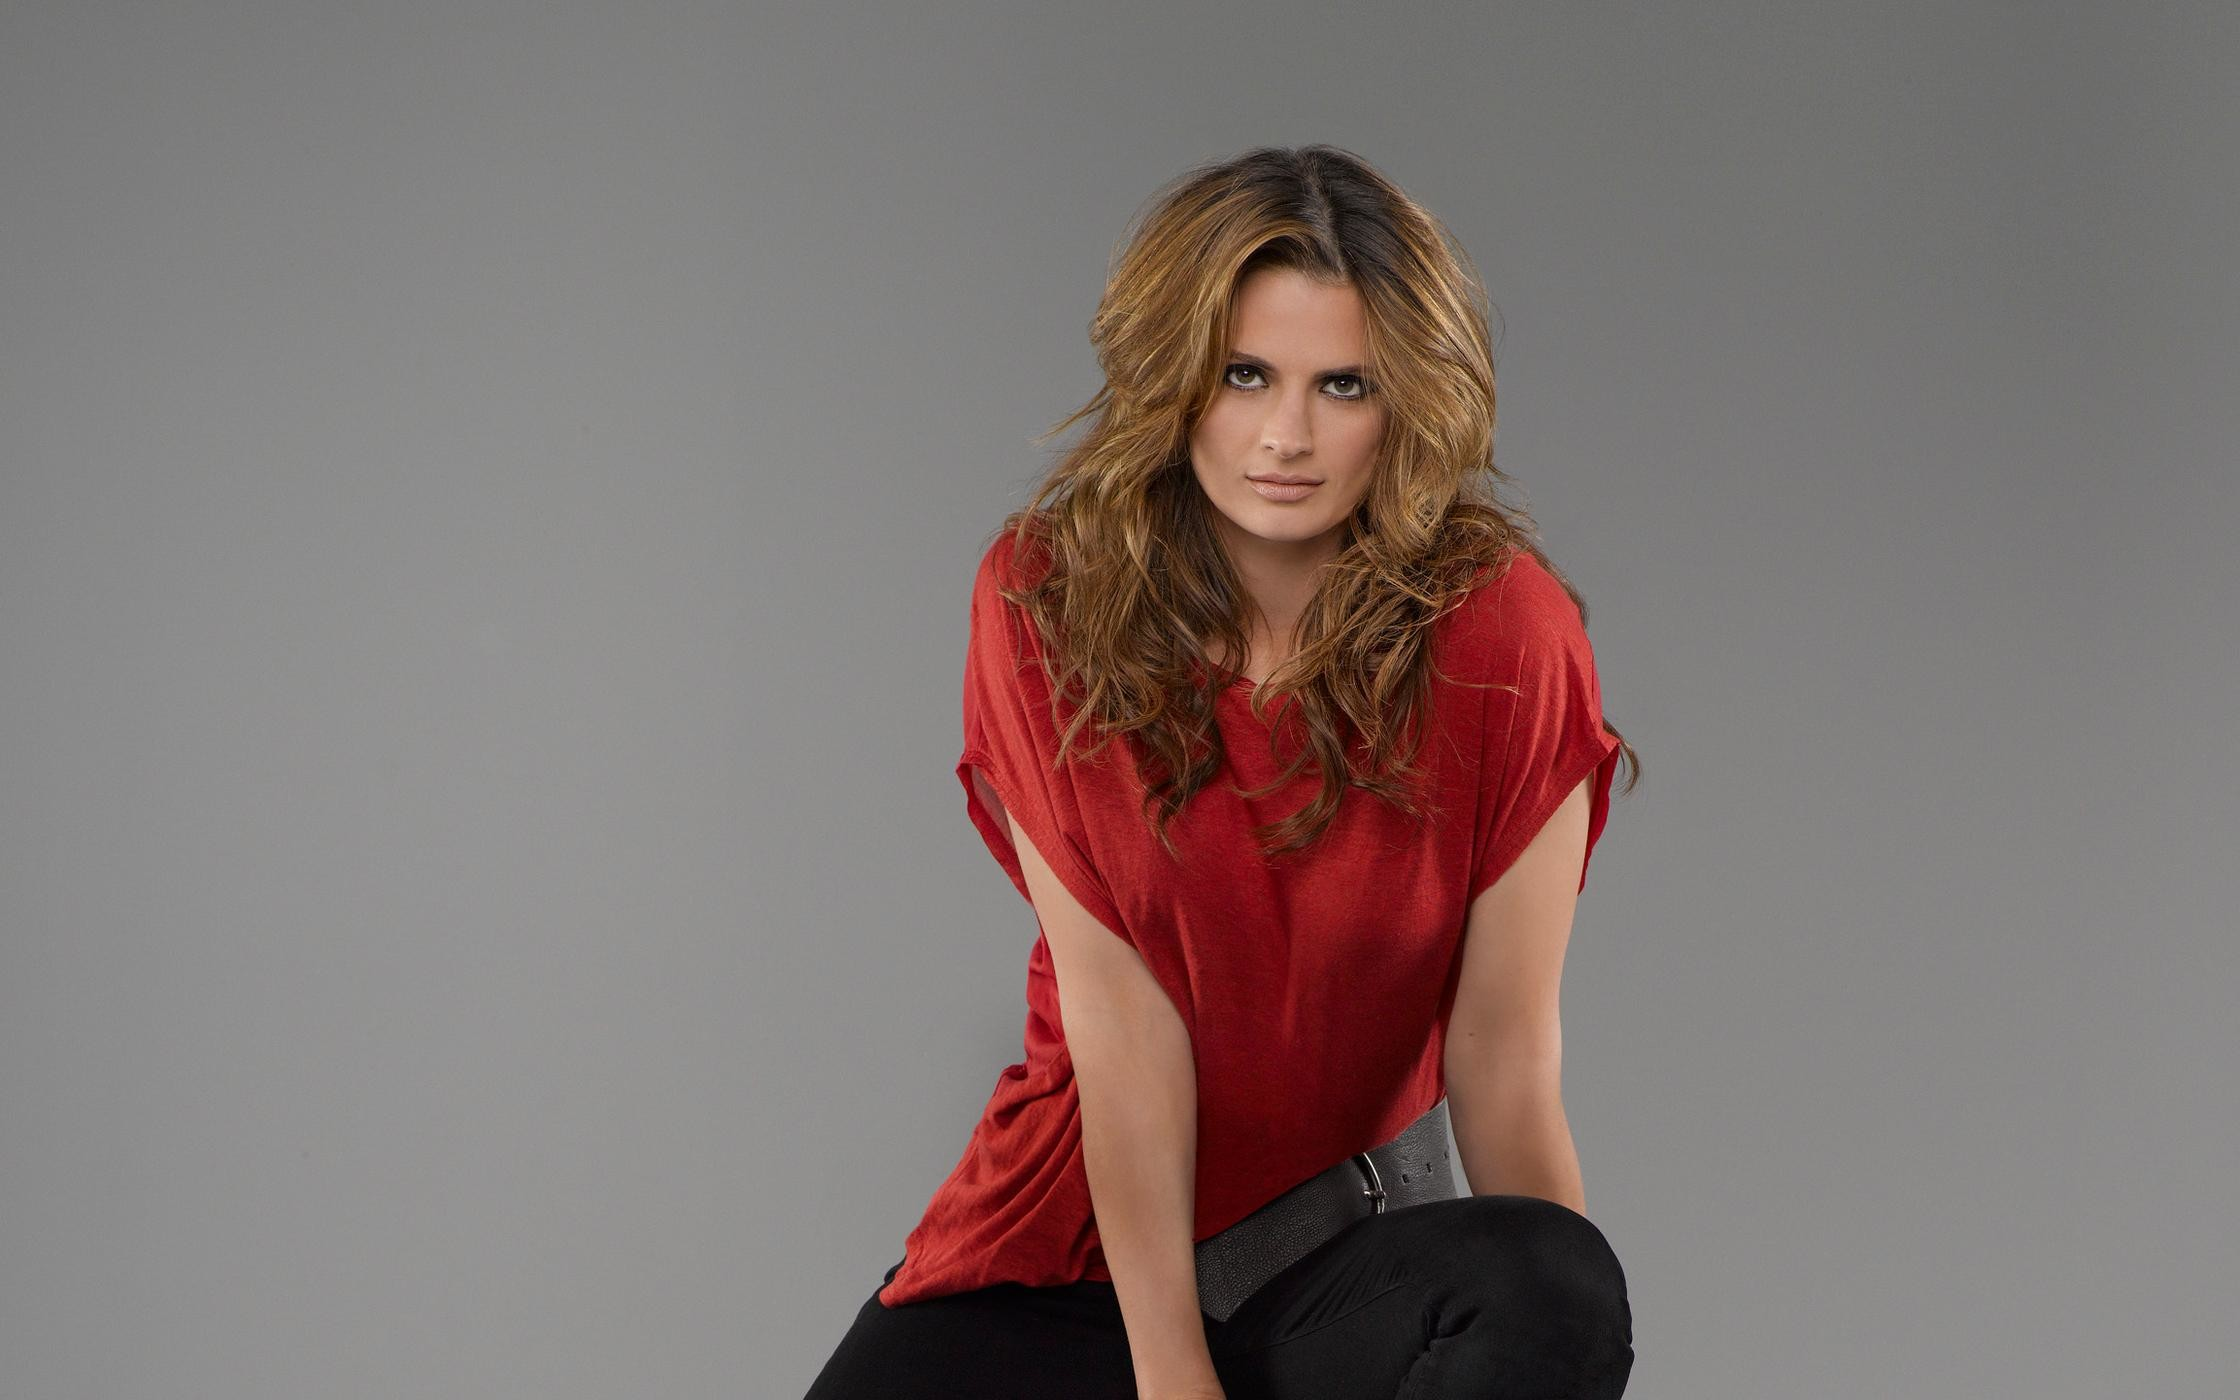 2240x1400 Stana Katic download wallpaper